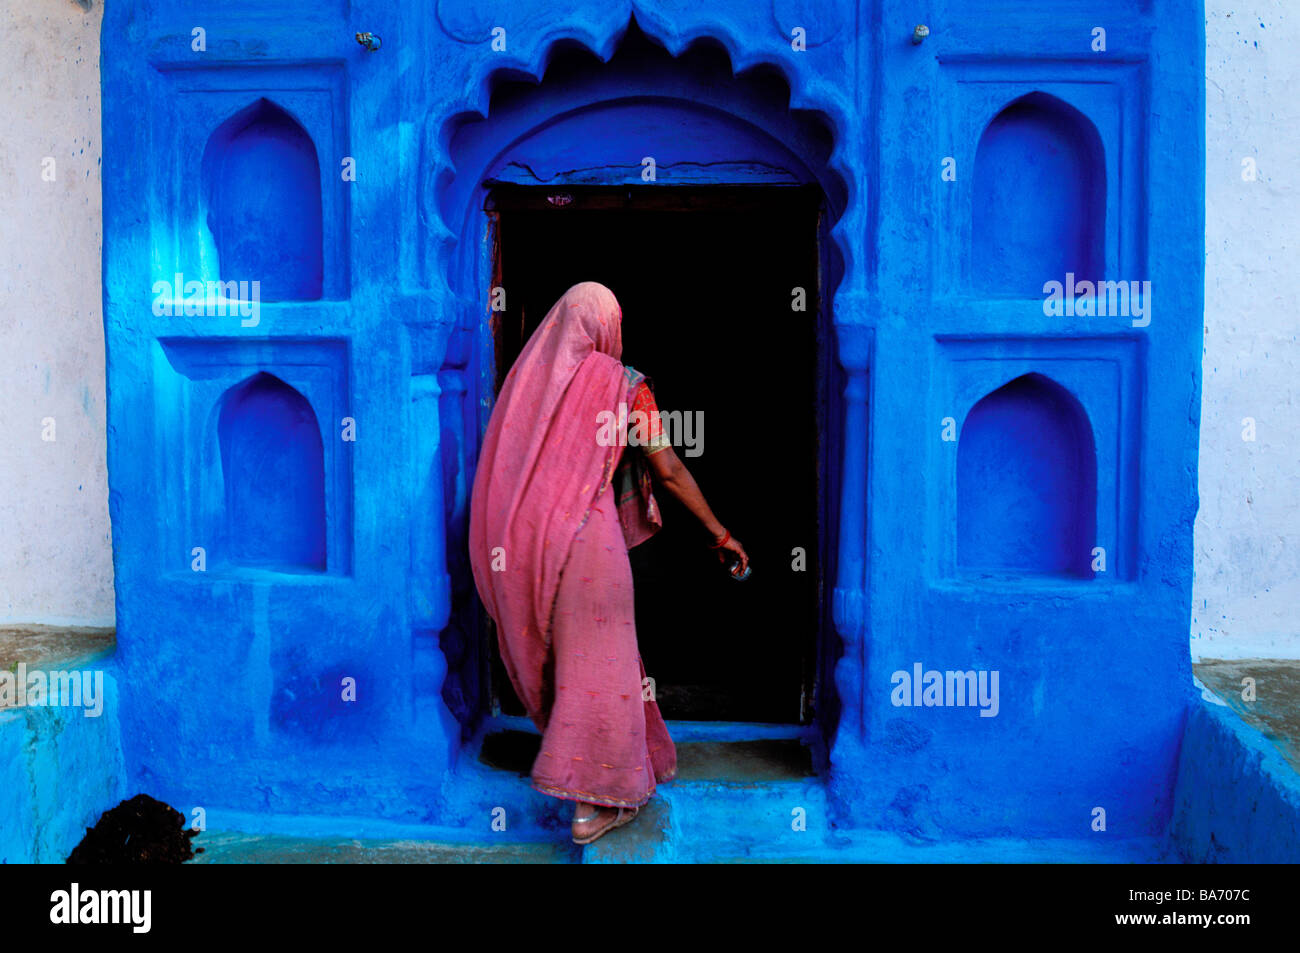 India, Rajasthan State, Jodhpur, the old blue town Stock Photo